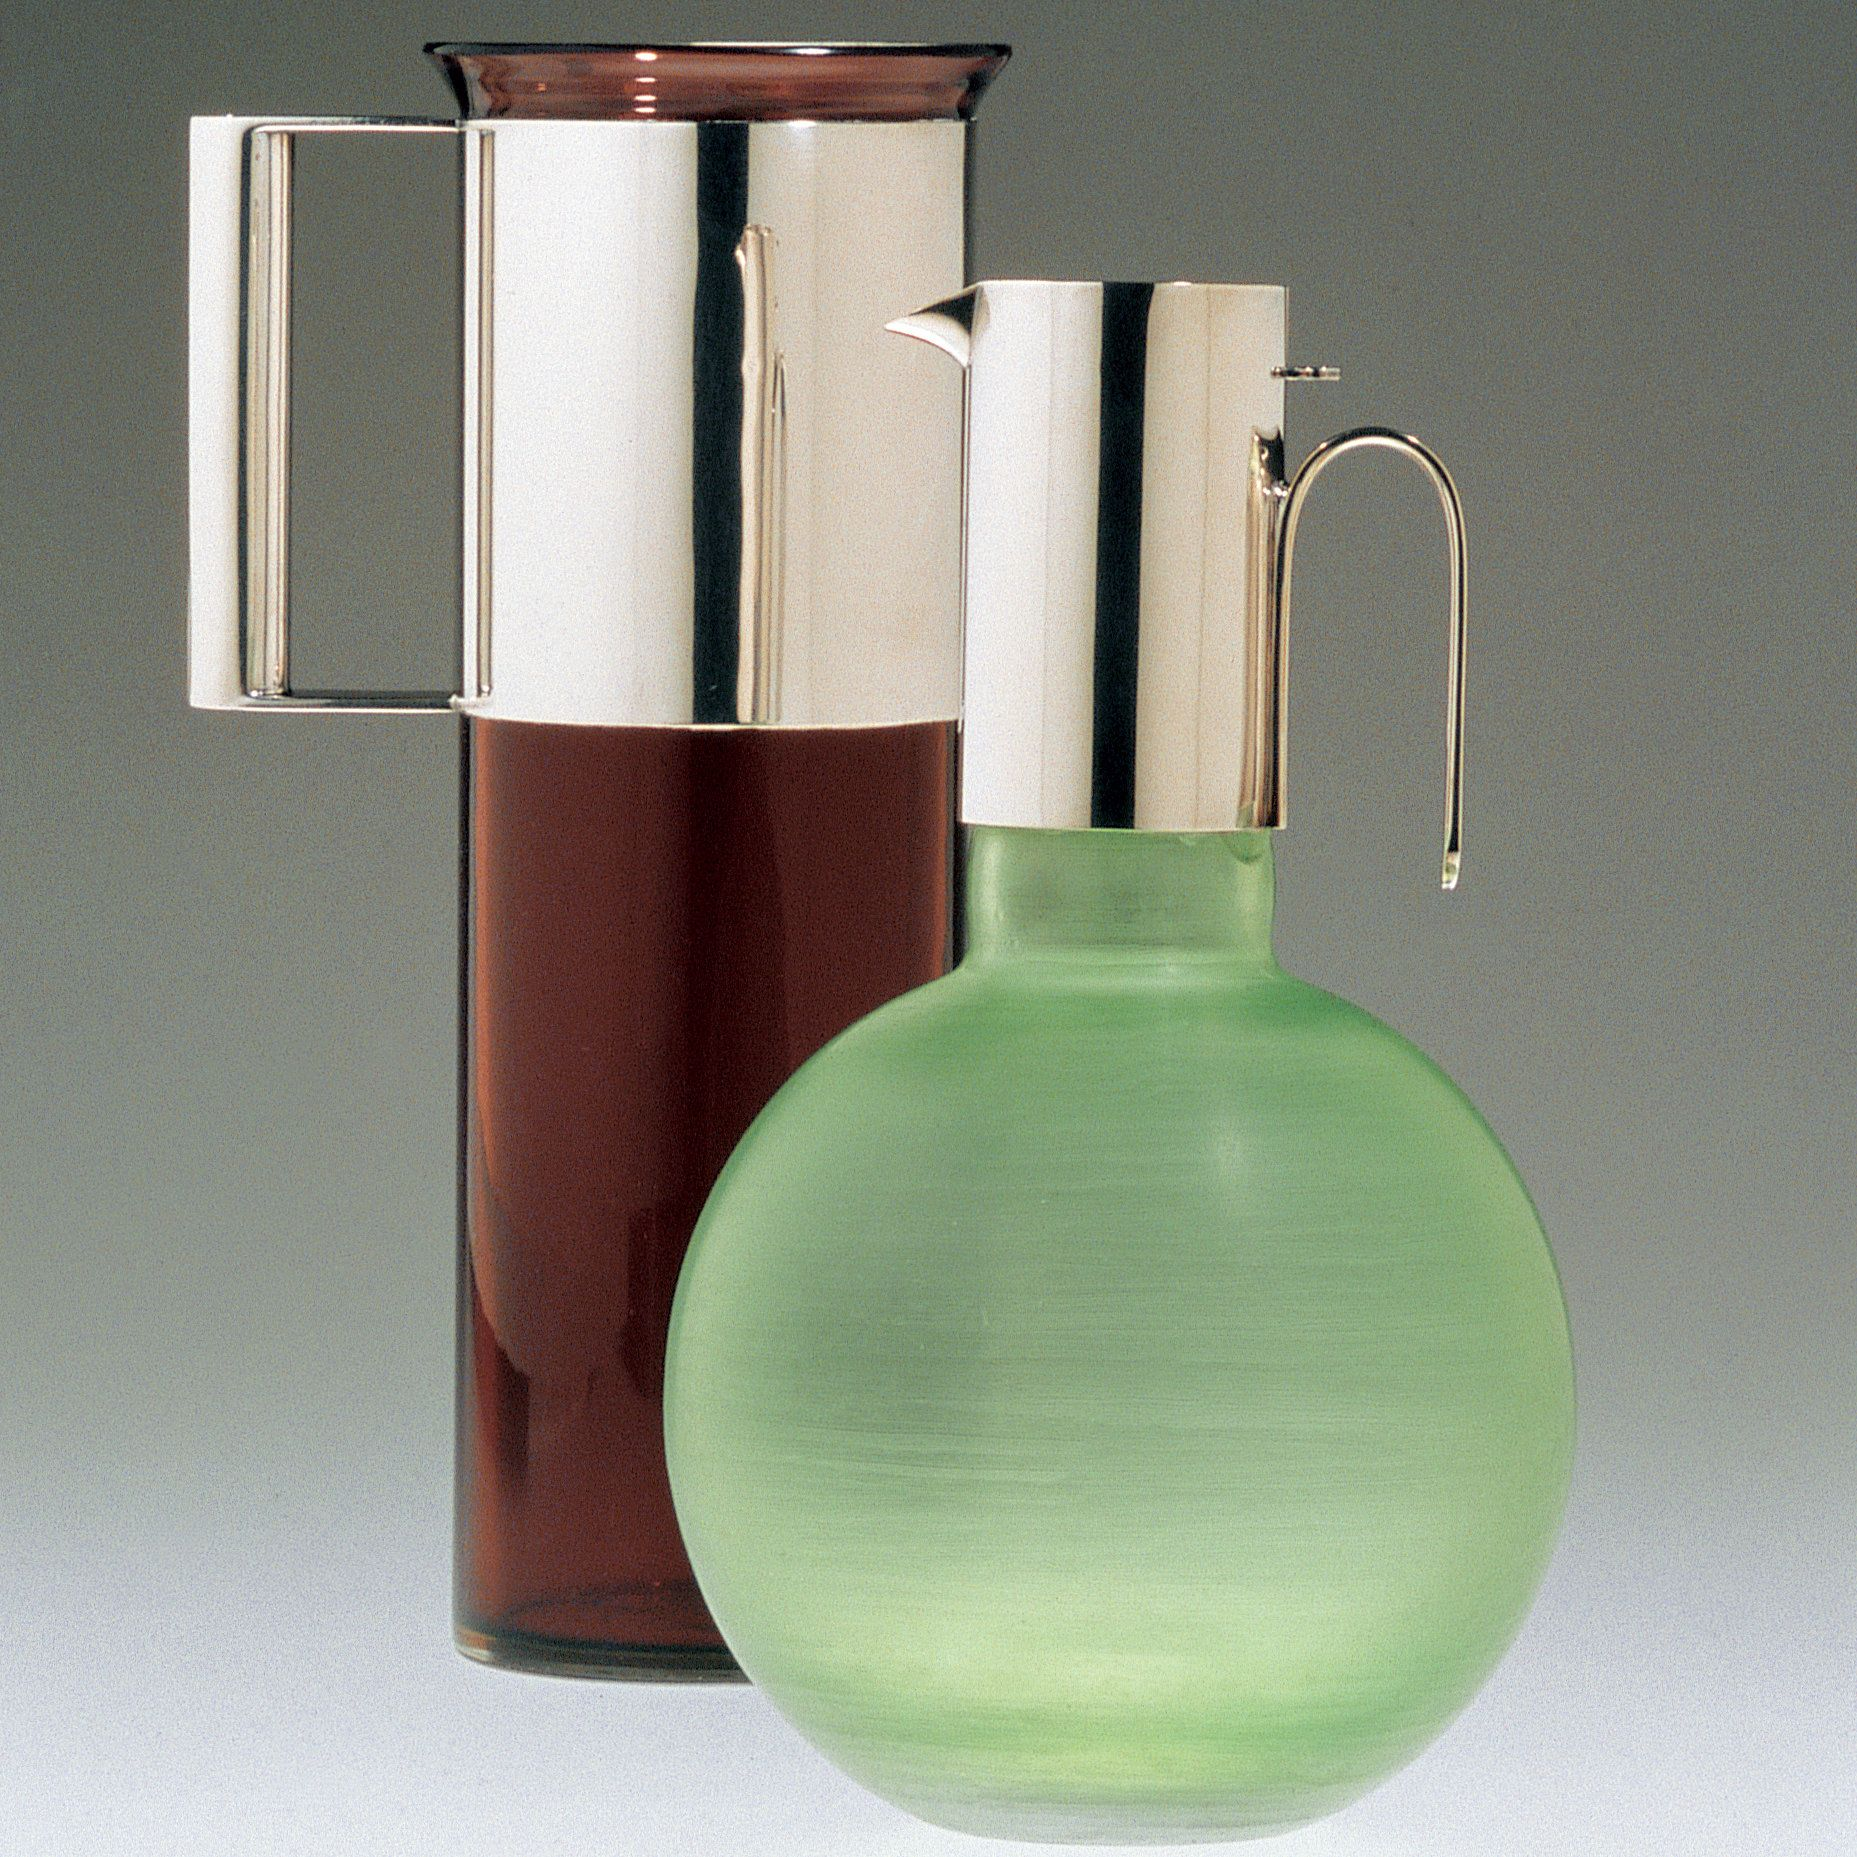 Lella and Massimo Vignelli's products, some of which are now on display at at the Italian Cultural Institute, are a study in elegance and simplicity.